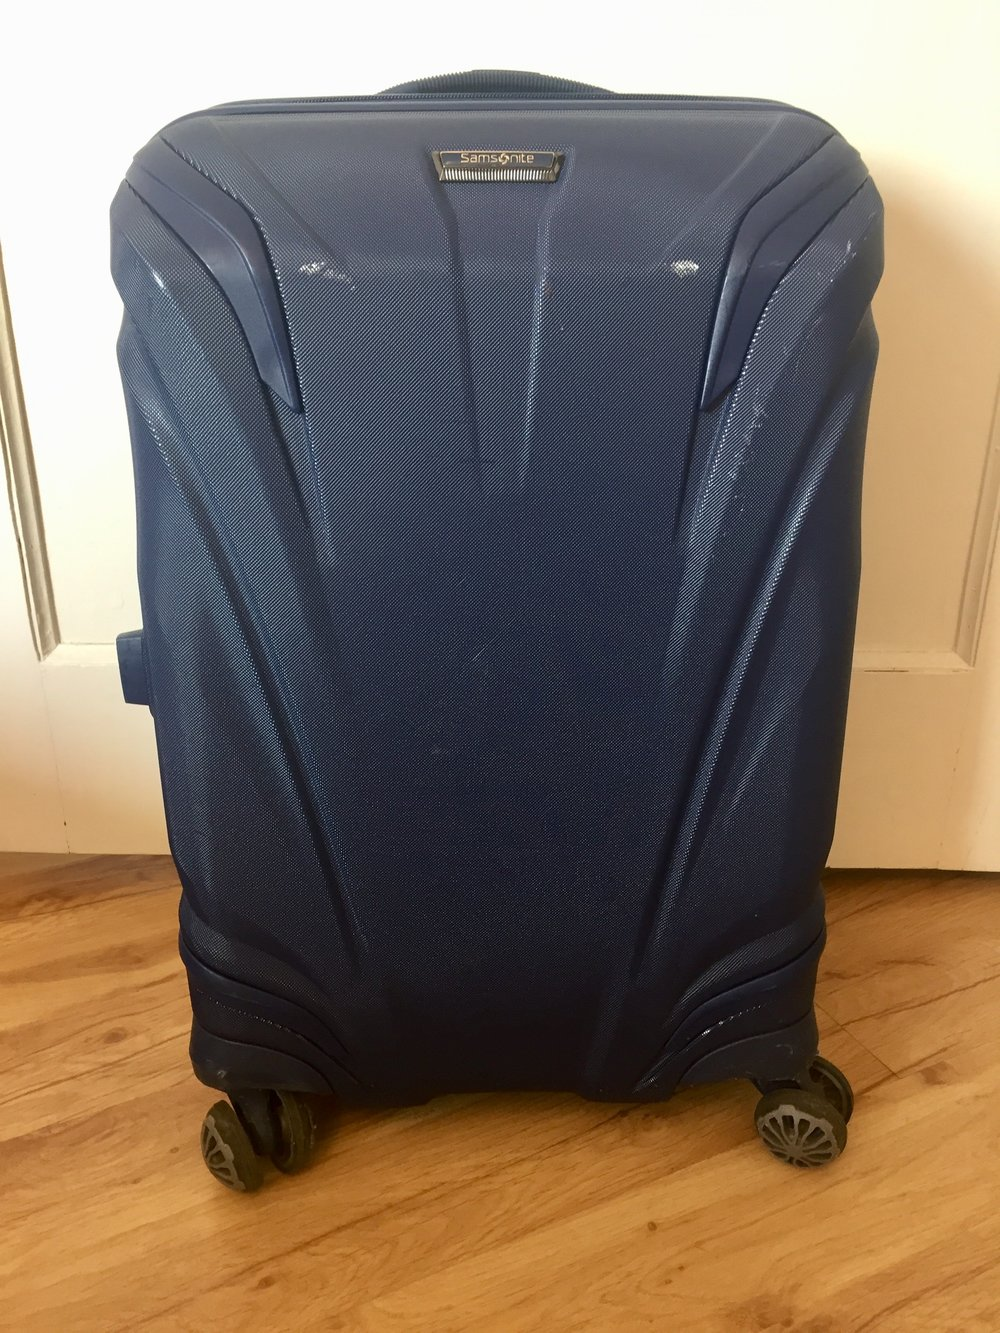 The Samsonite Silouette hard shell roller bag was a great choice for me.